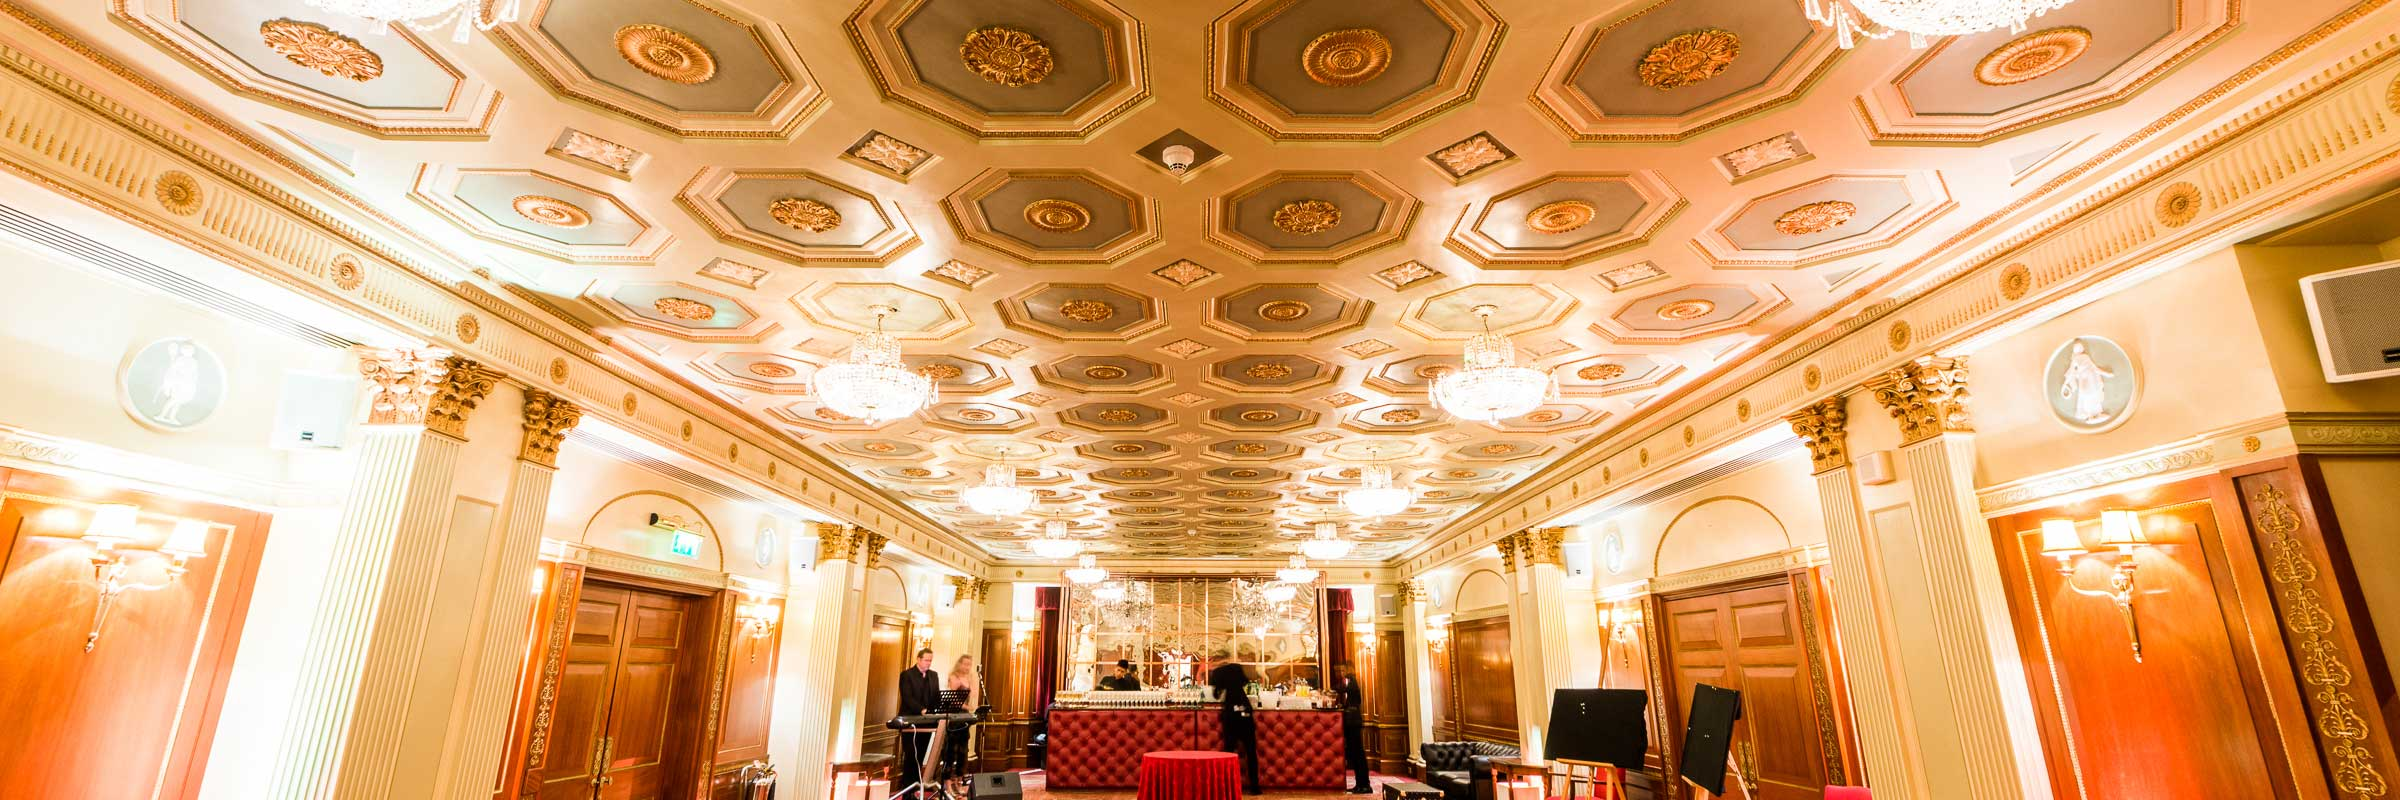 Latest news The Worshipful Company of Plaisterers